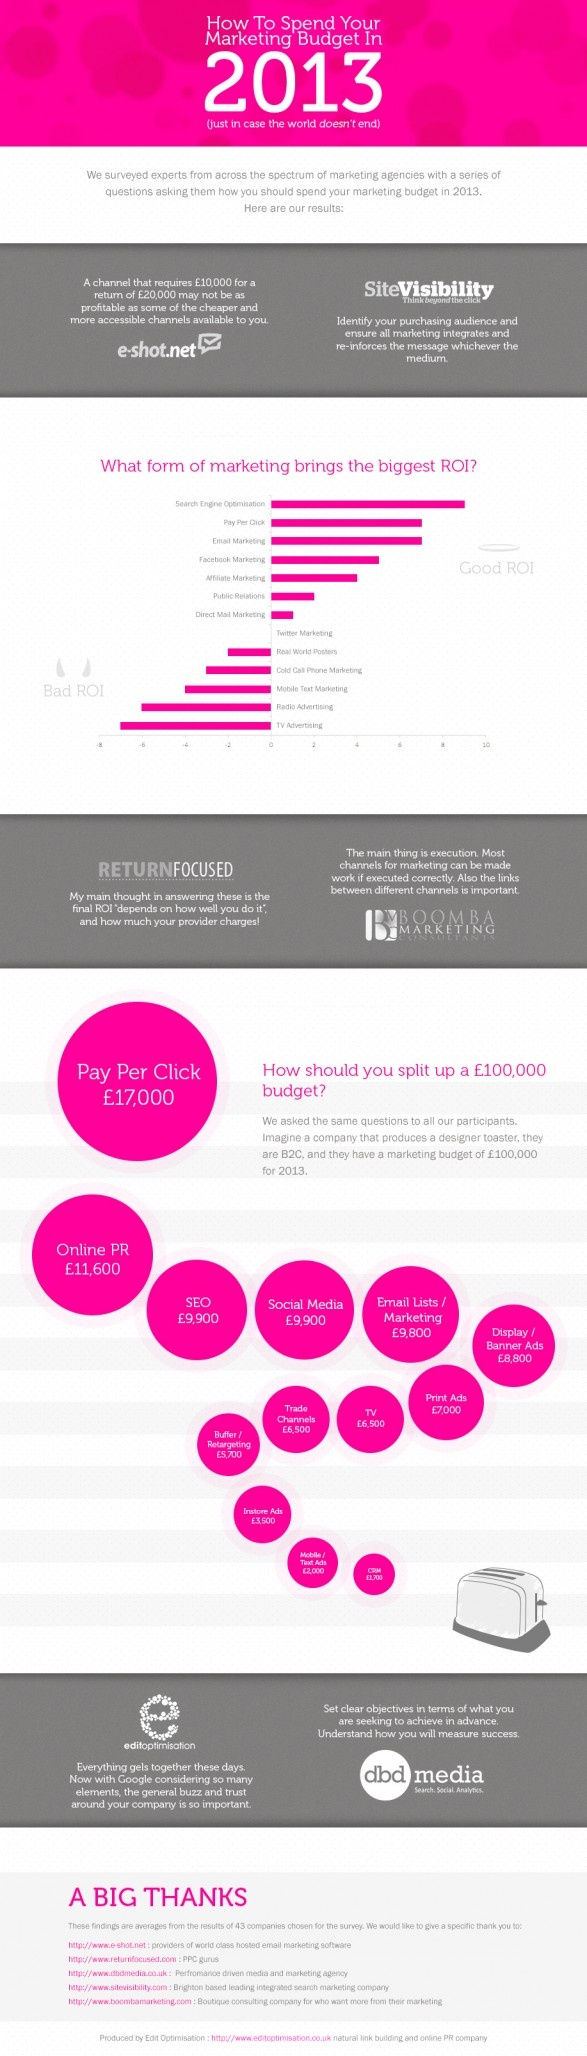 How to spend your marketing bugdet in 2013